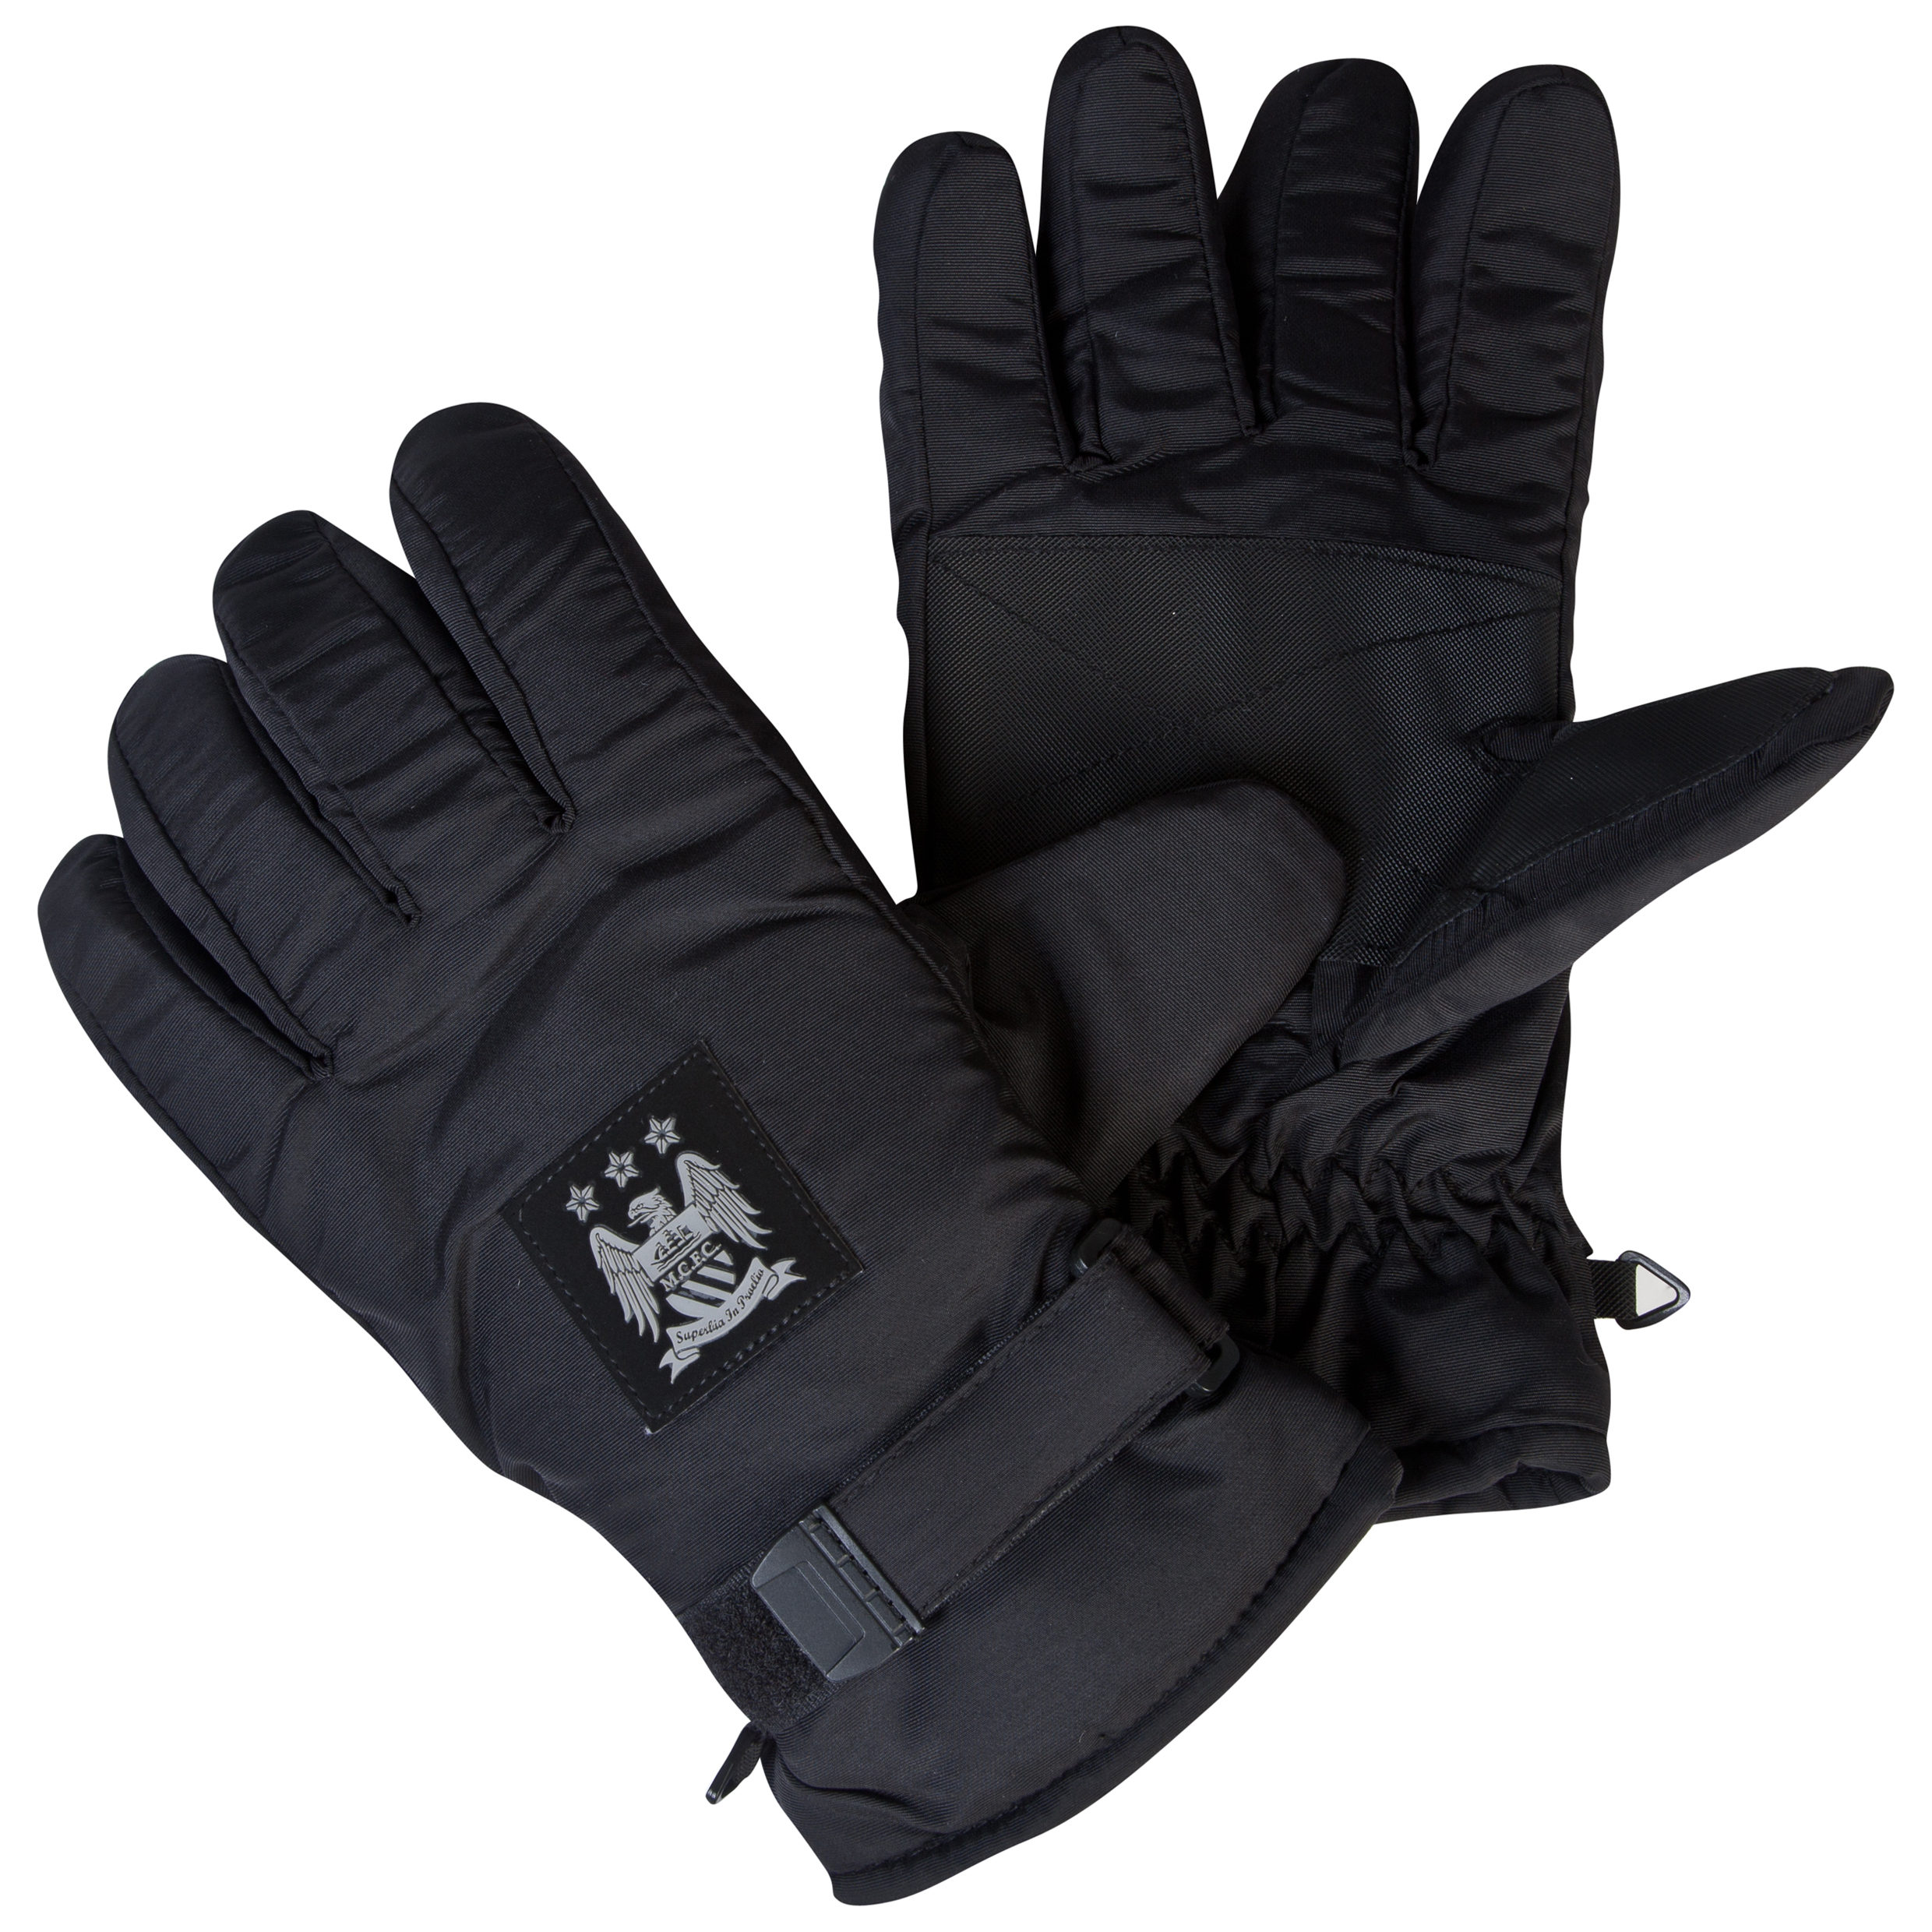 Manchester City Performance Crag Glove Black